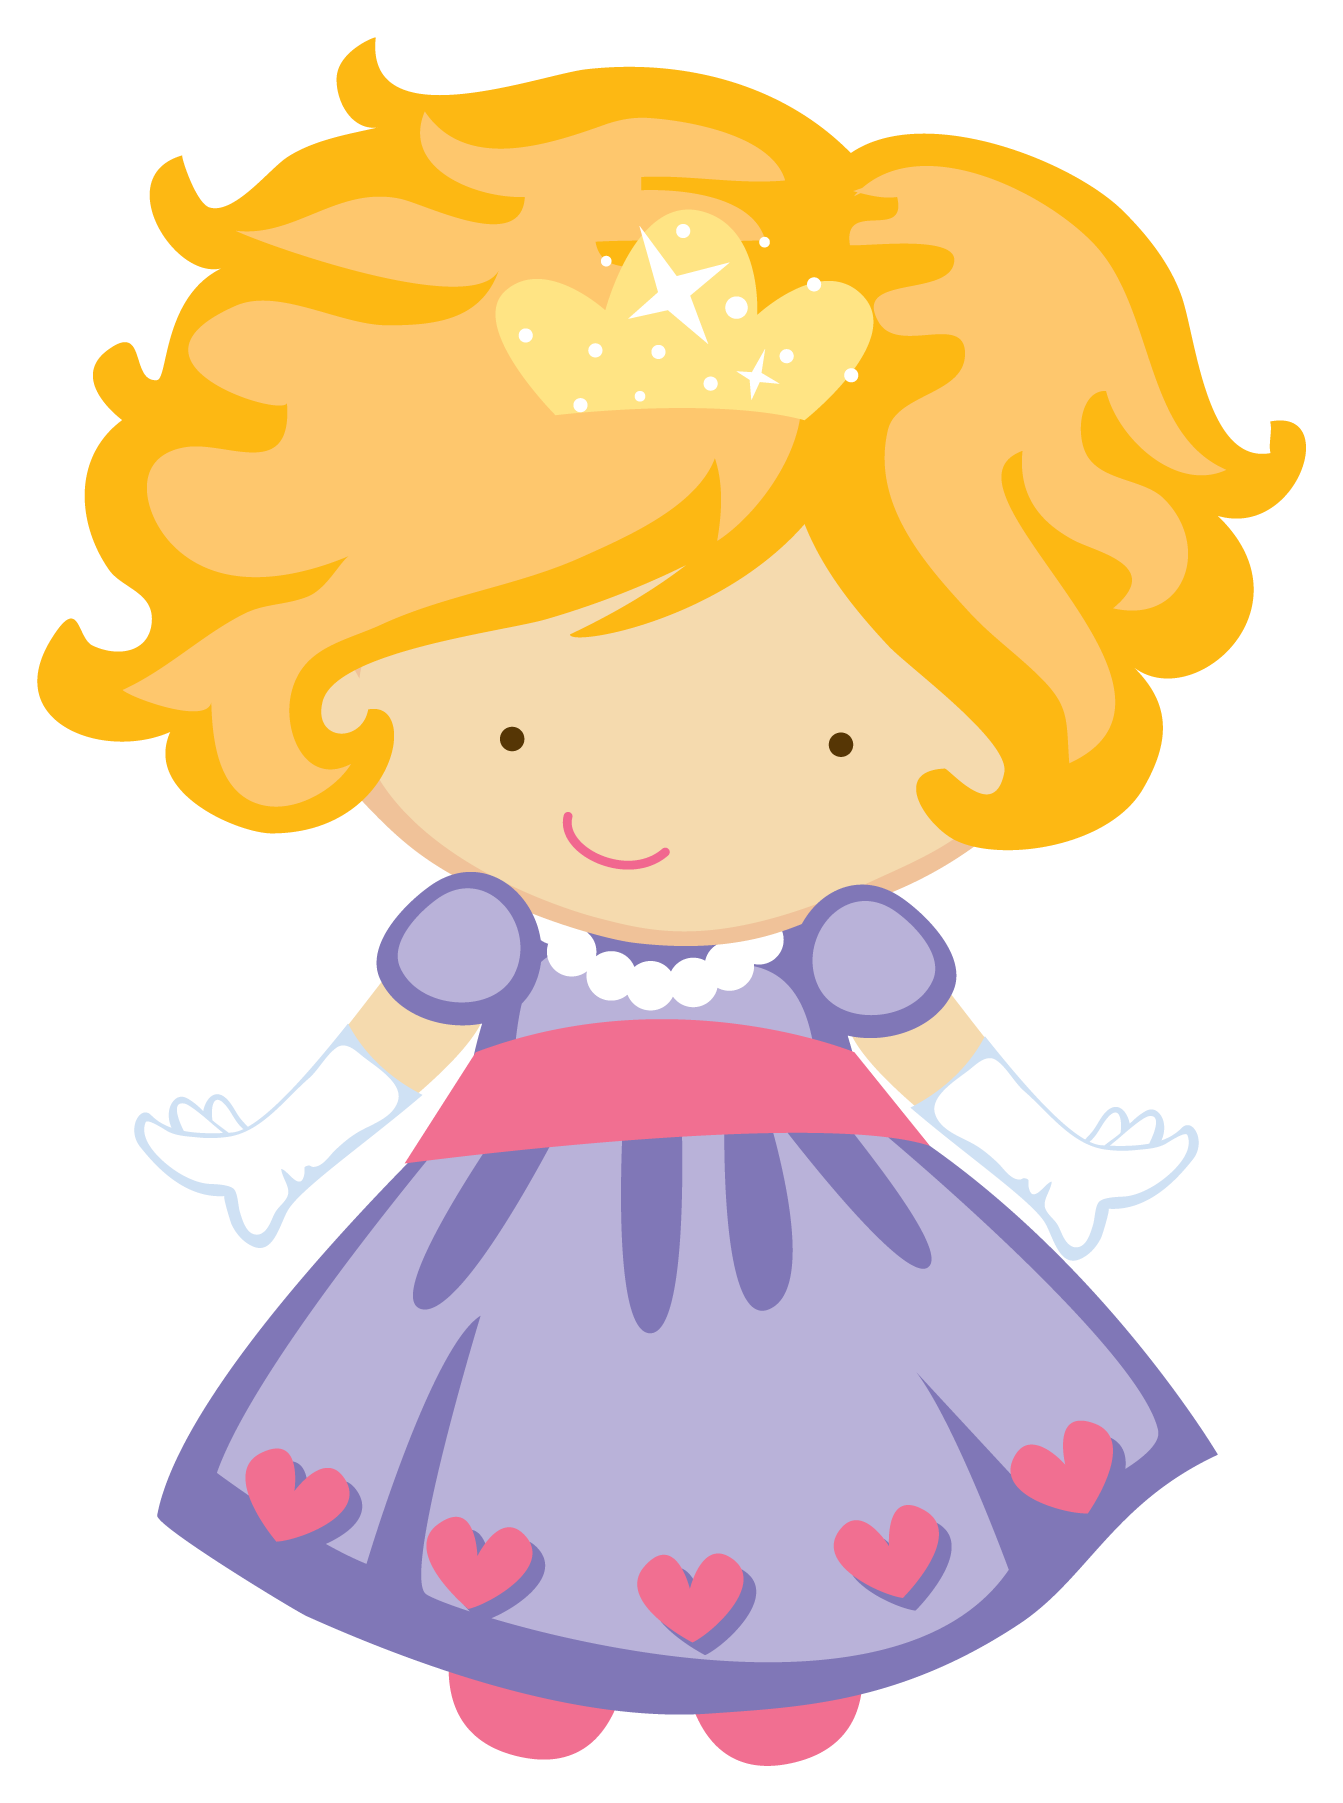 Cupid clipart medieval. Zwd fairitale princess png